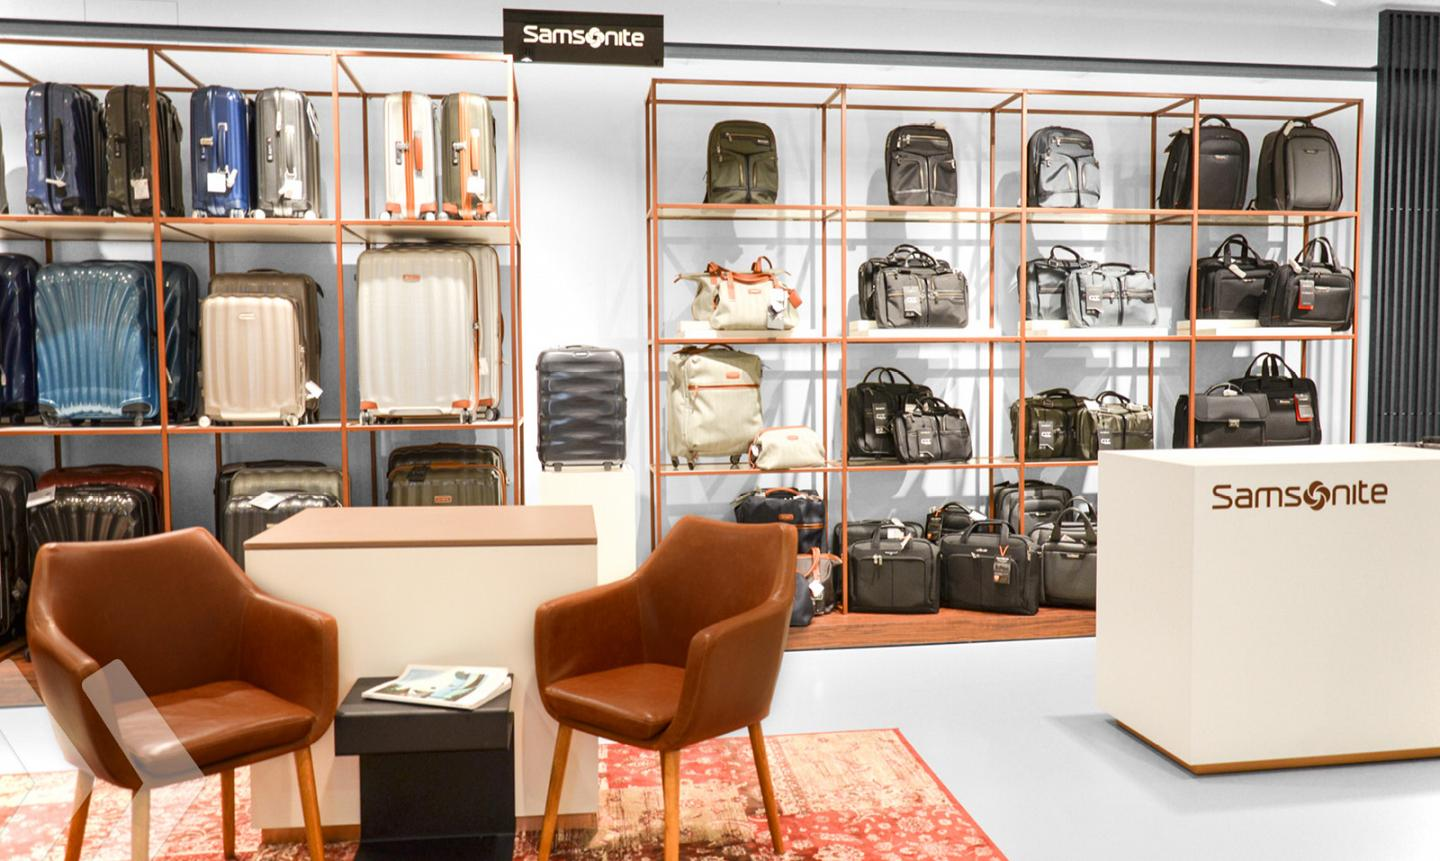 Samsonite Shop in Shop 5